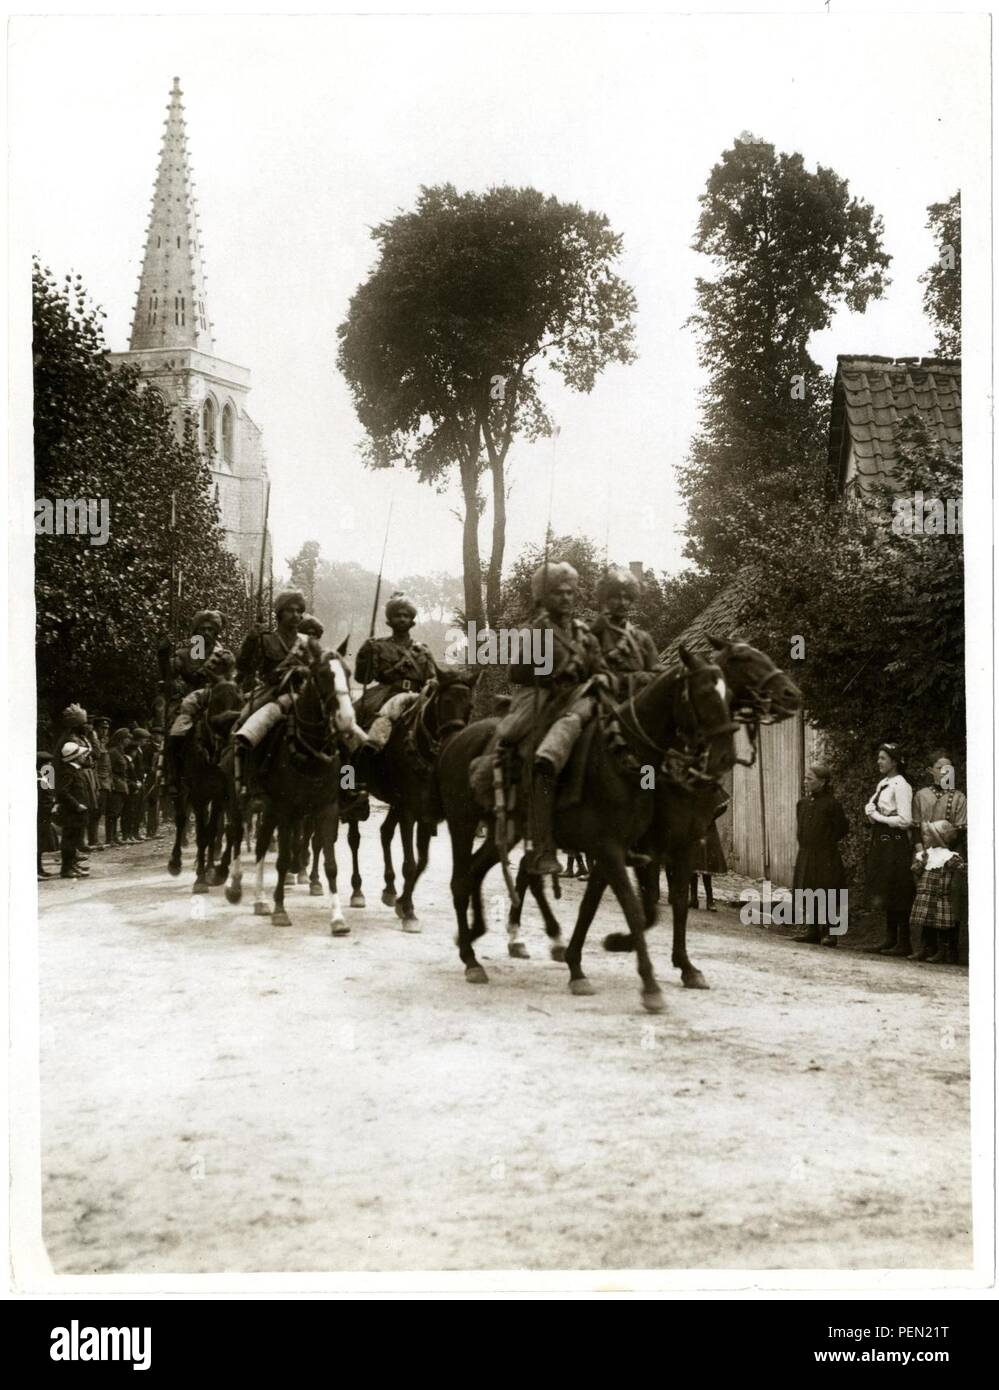 Indian cavalry marching through a French village [Estr u00e9e Blanche]. Photographer  H. D. Girdwood. - Stock Image